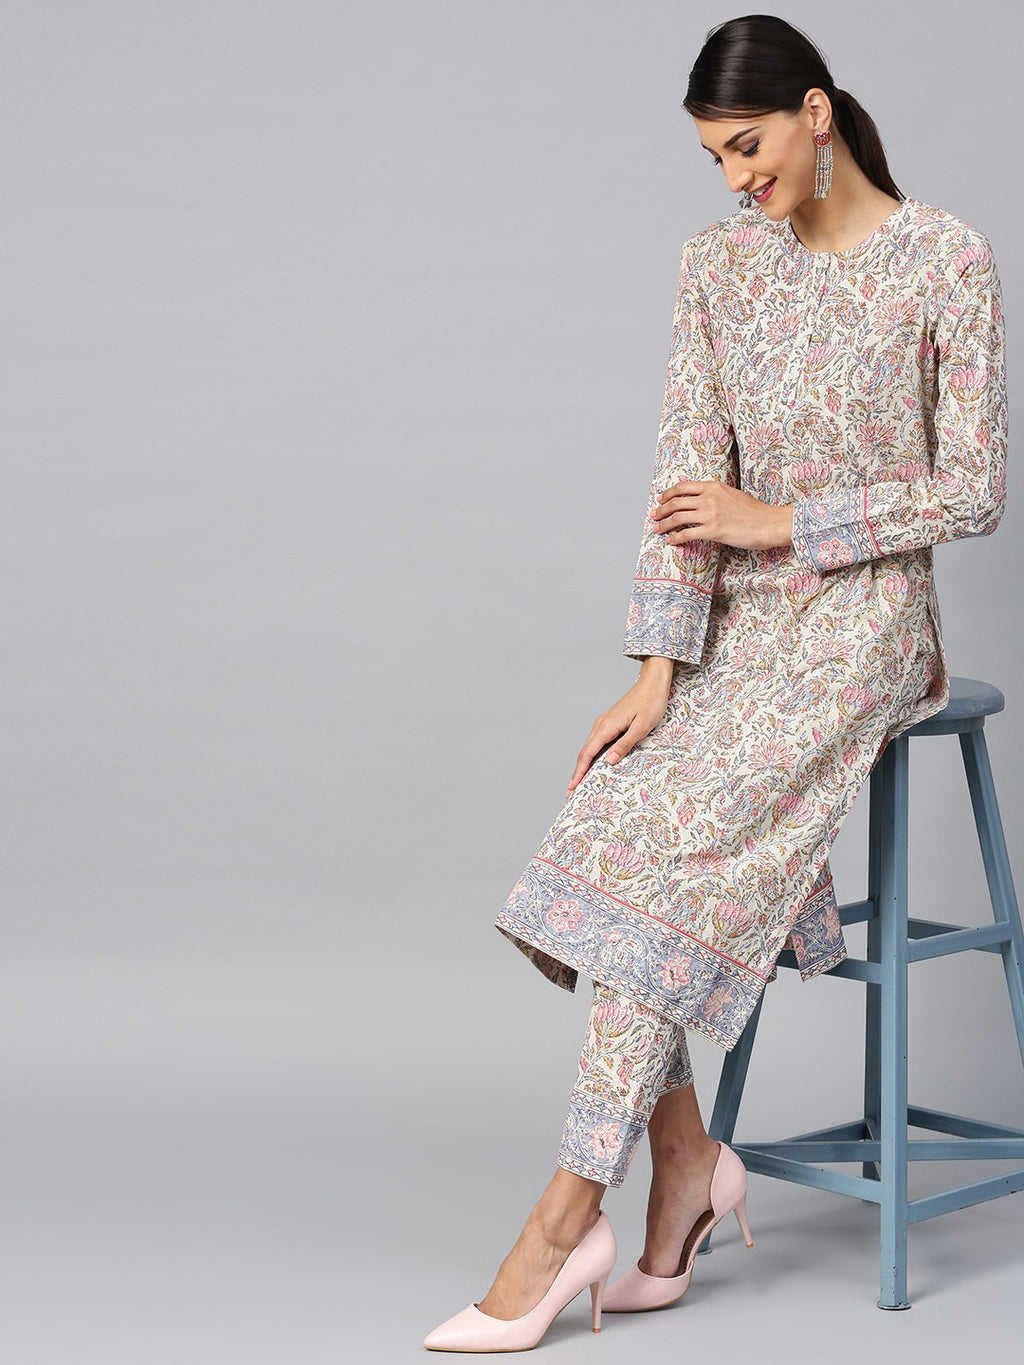 Cream & Pink Floral Printed Straight Kurta With Pant (Fully Stitched) | Znx4ever.com